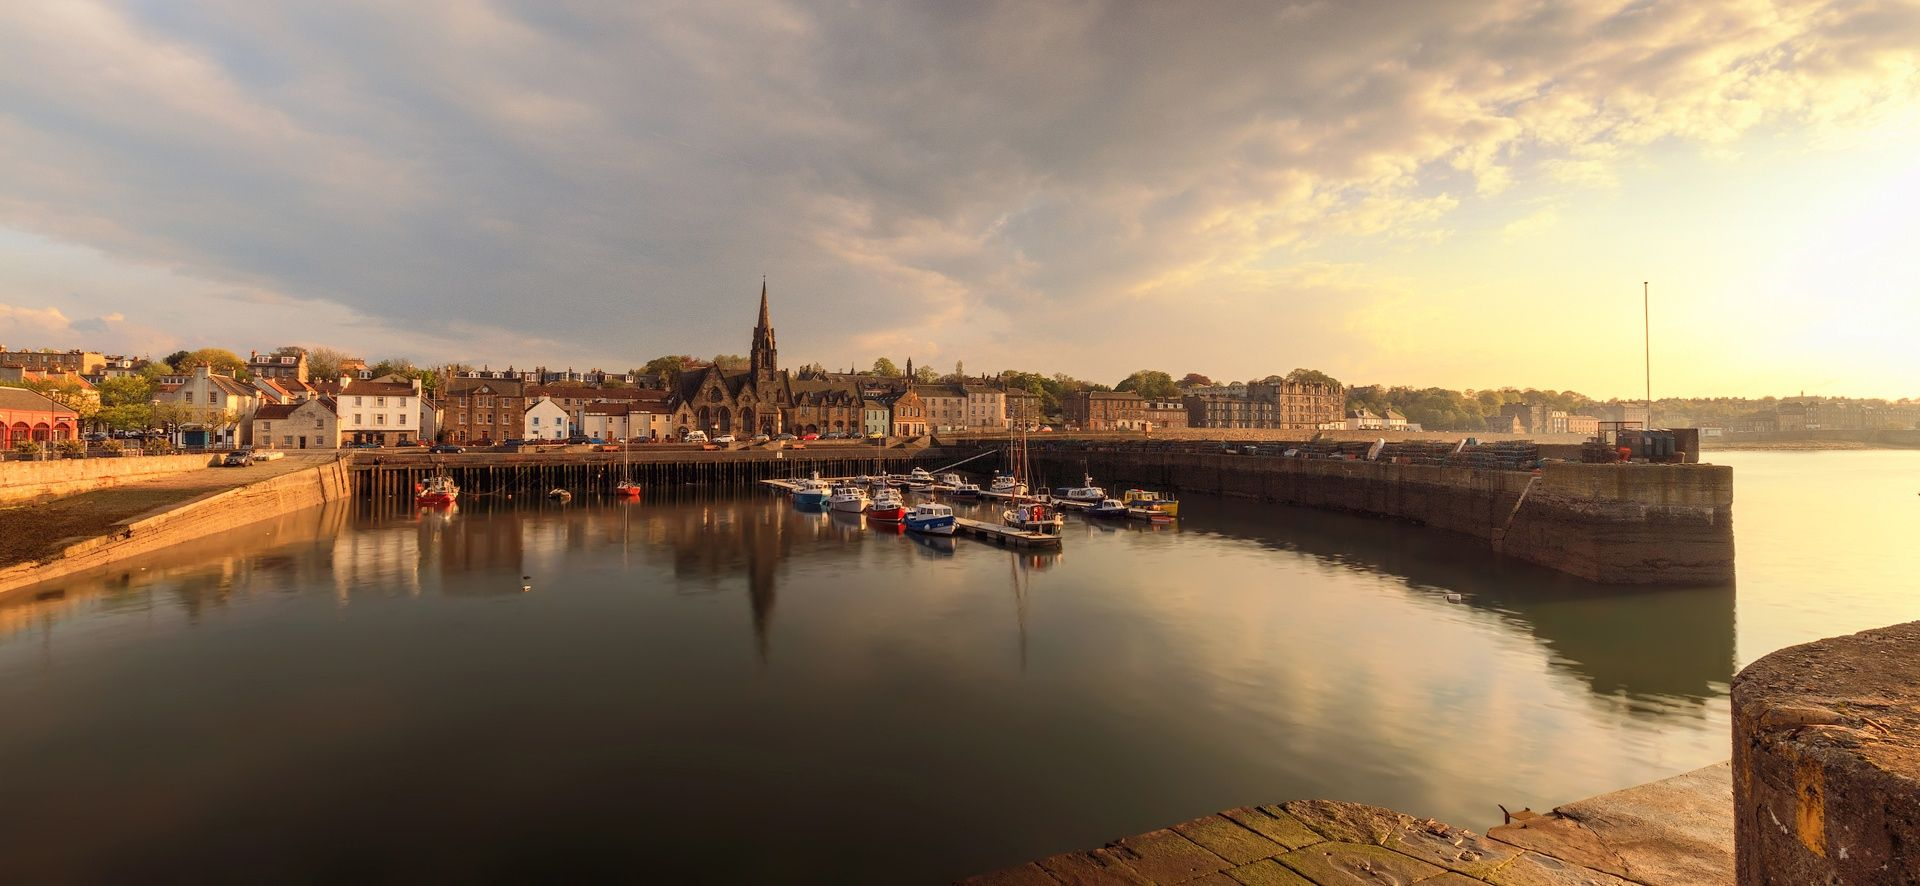 Sun begins to set over Newhaven Harbour, Edinburgh by Miles Gray on 500px